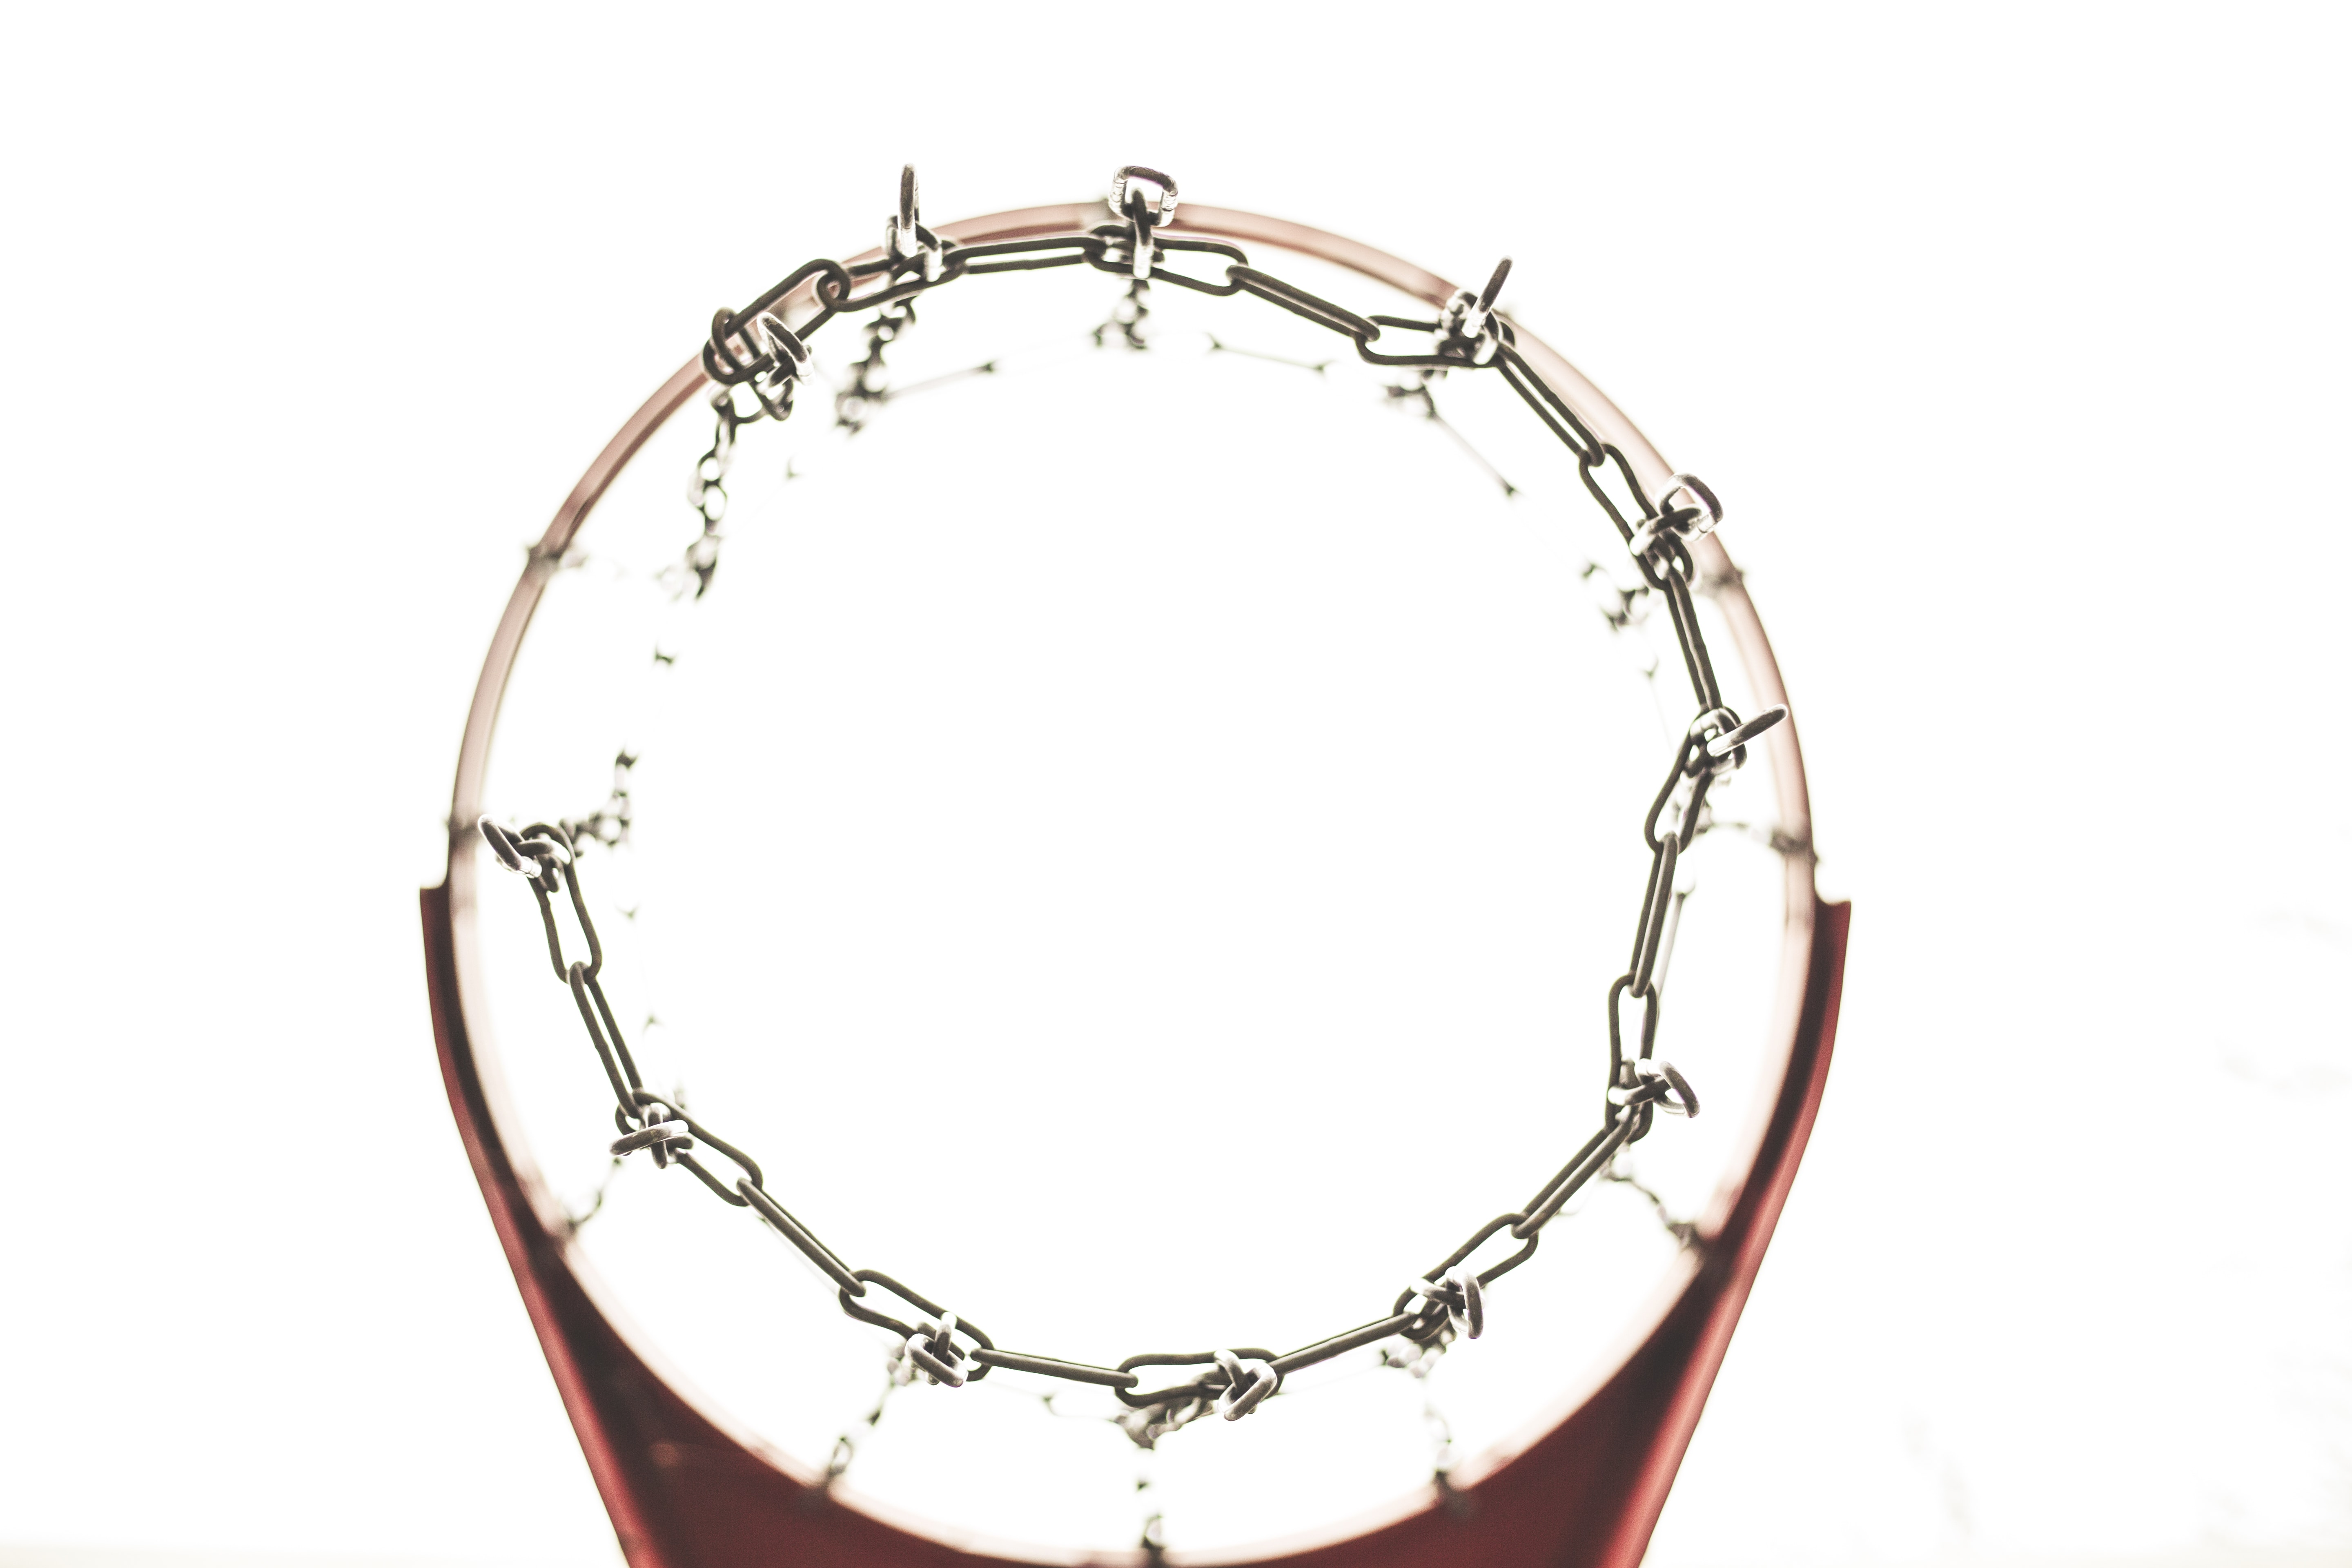 red and gray metal chain net basketball hoop